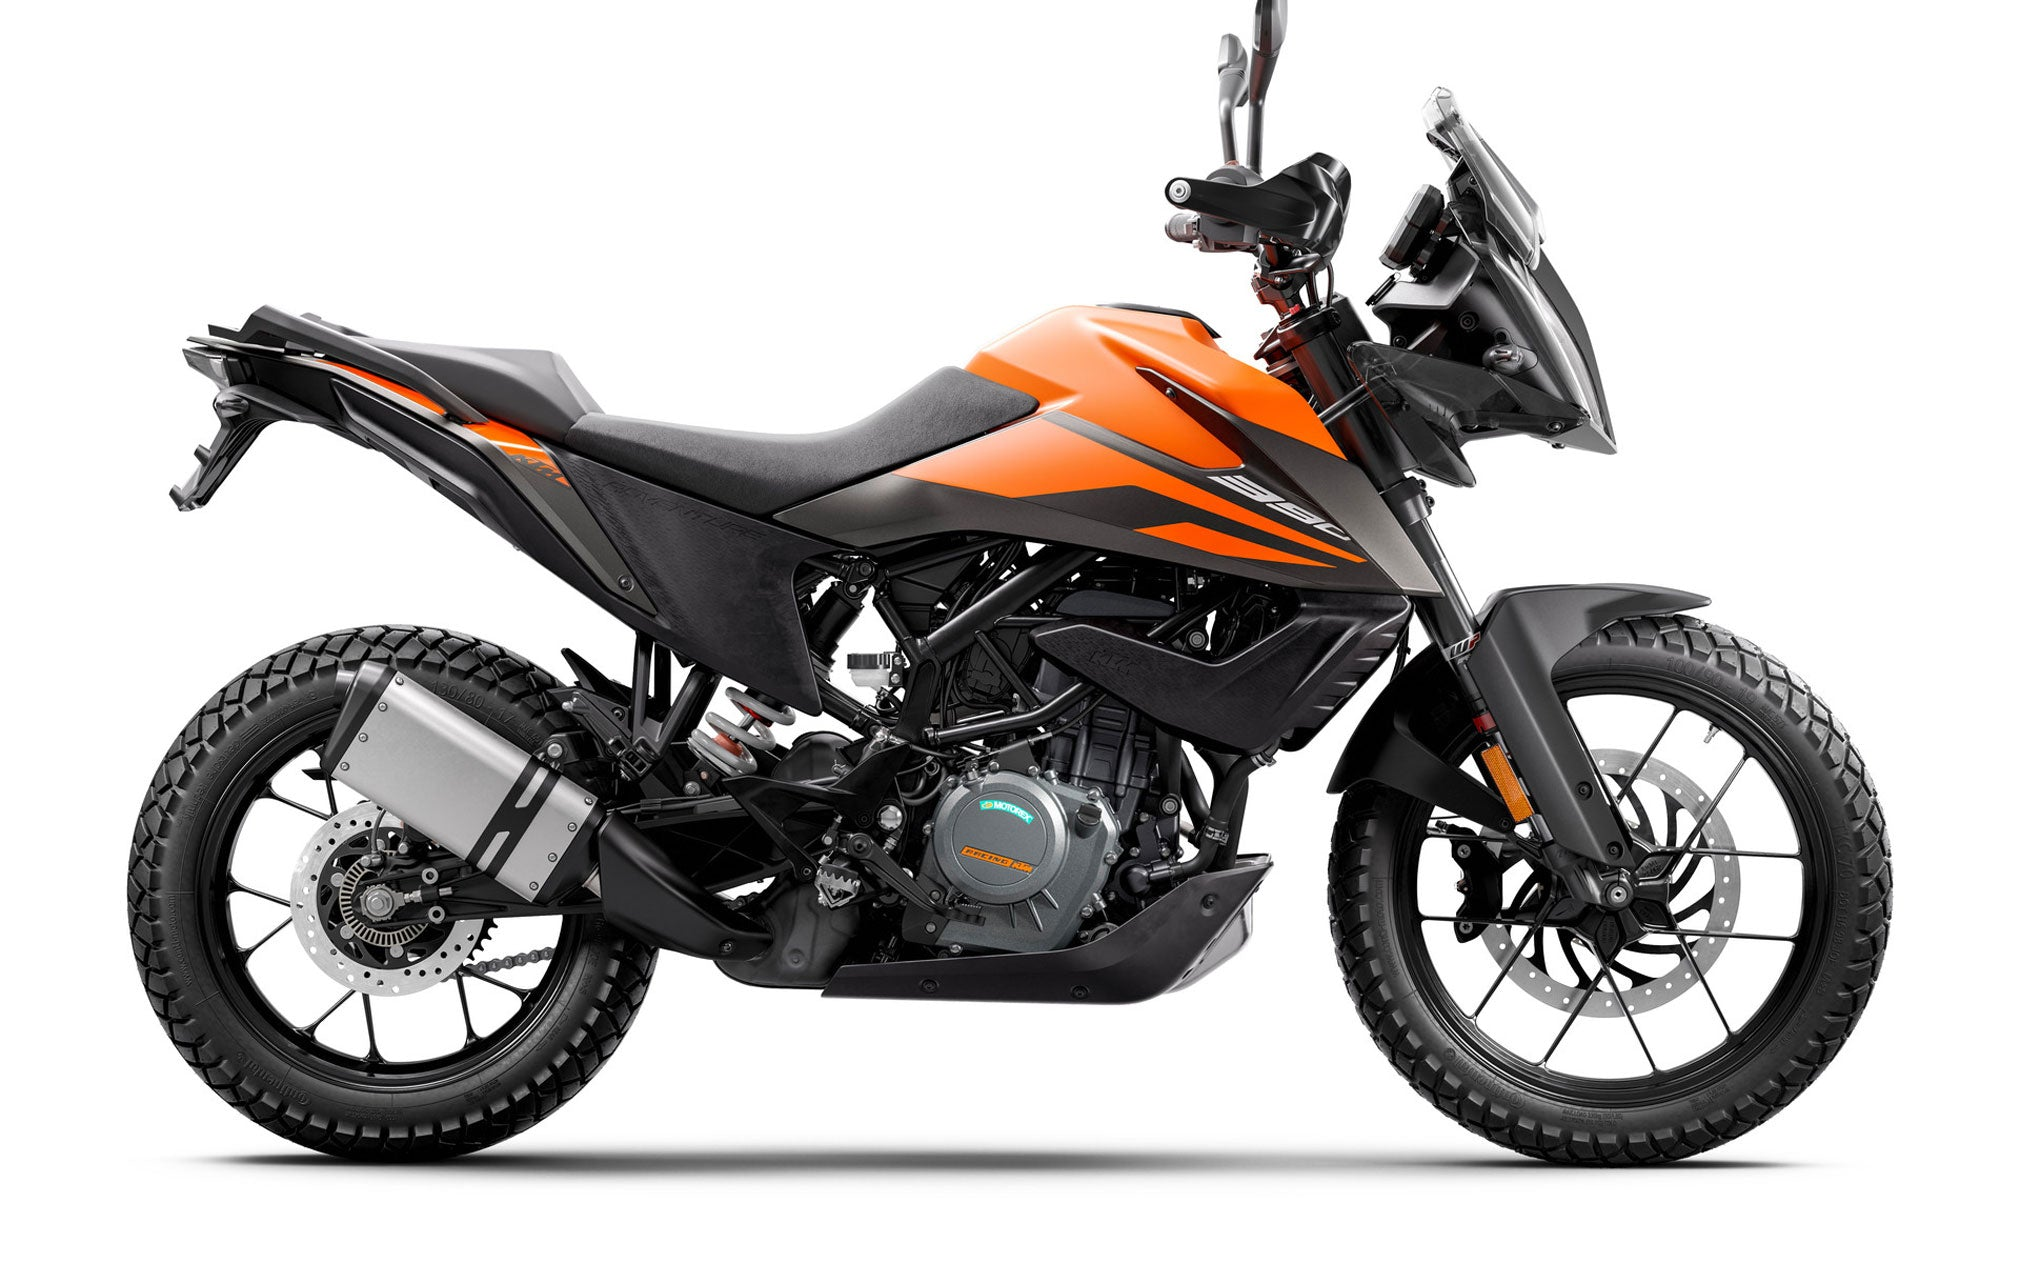 KTM 390 Adventure – price starting at $6,199